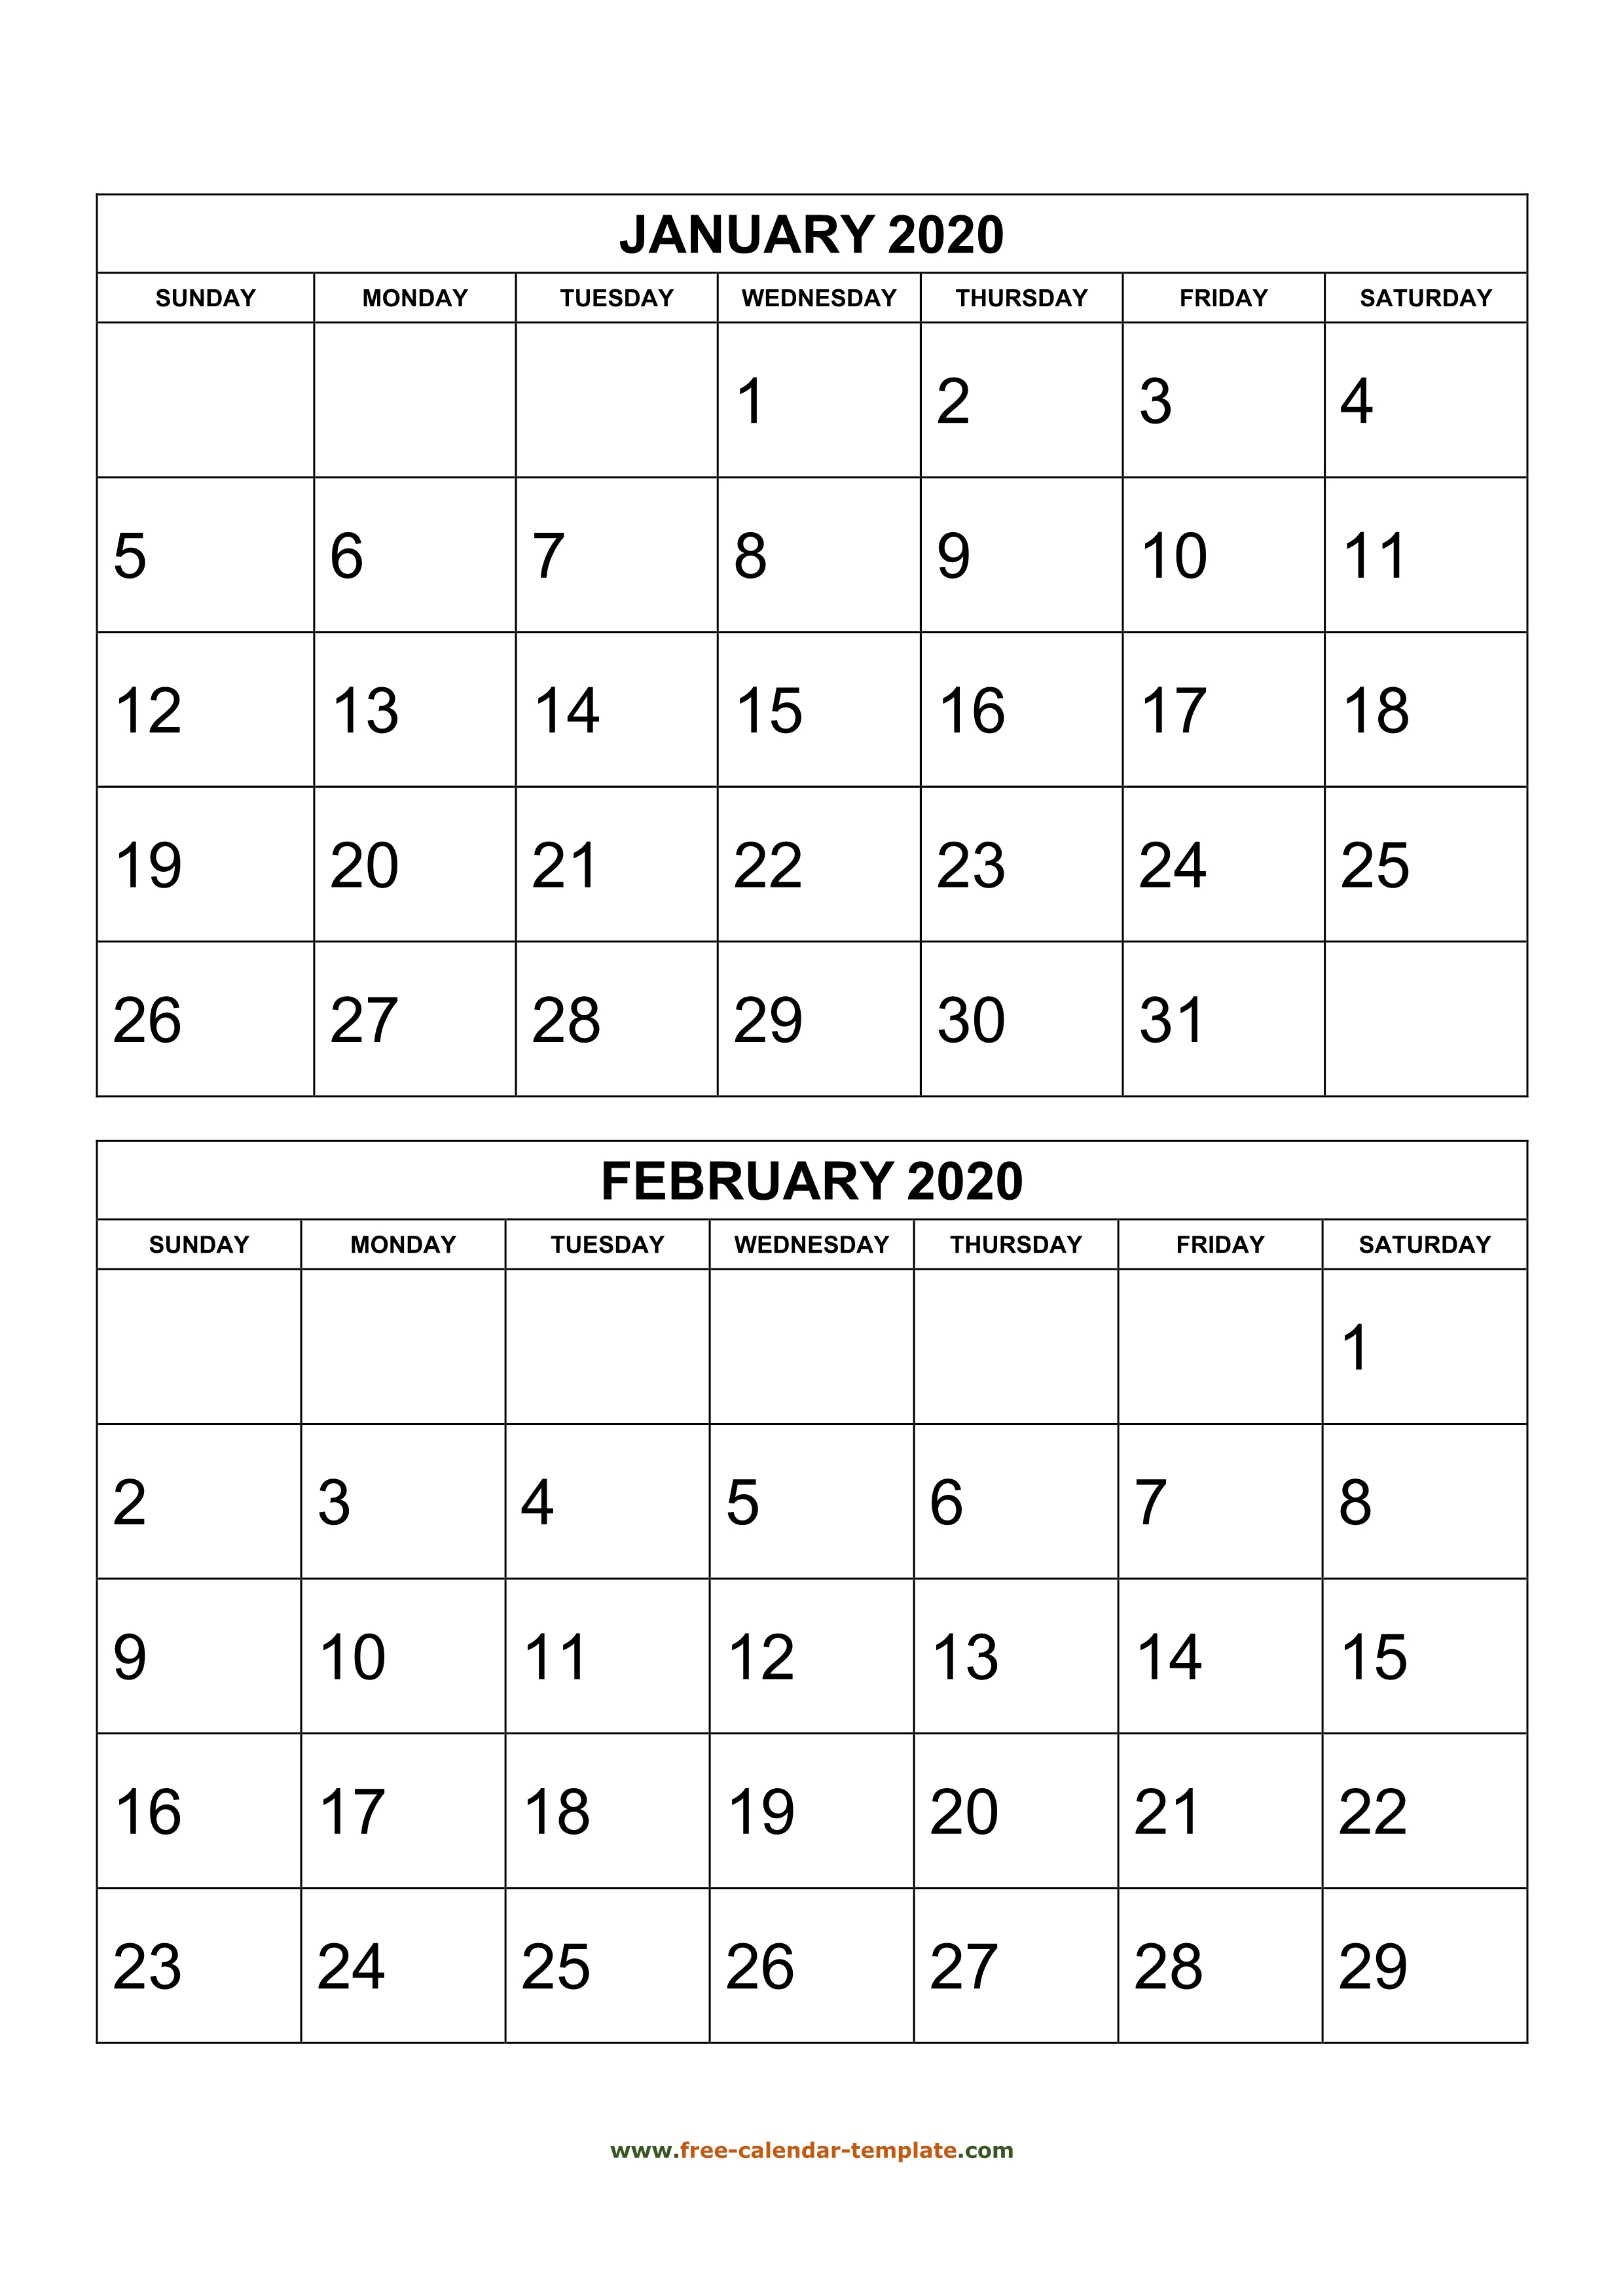 Monthly Calendar 2020, 2 Months Per Page (Vertical) | Free intended for Printable Calendar 3 Months Per Page